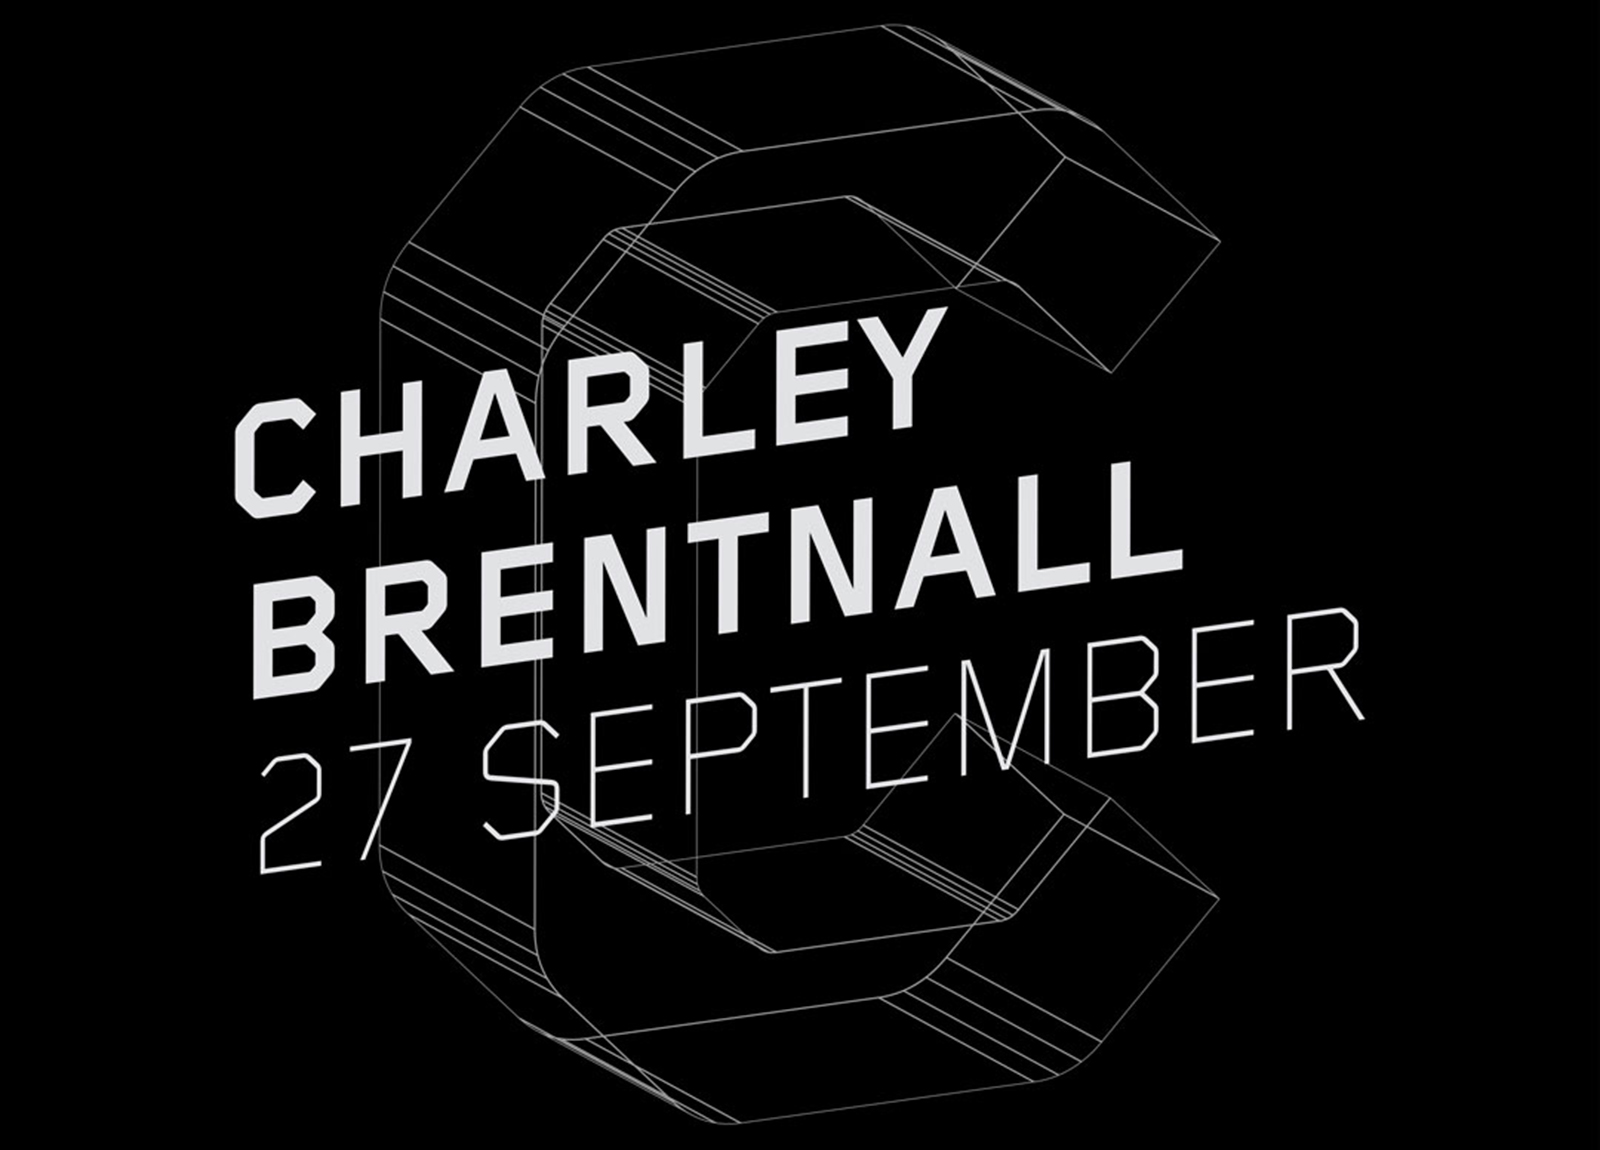 Diverse Practices: Charley Brentnall